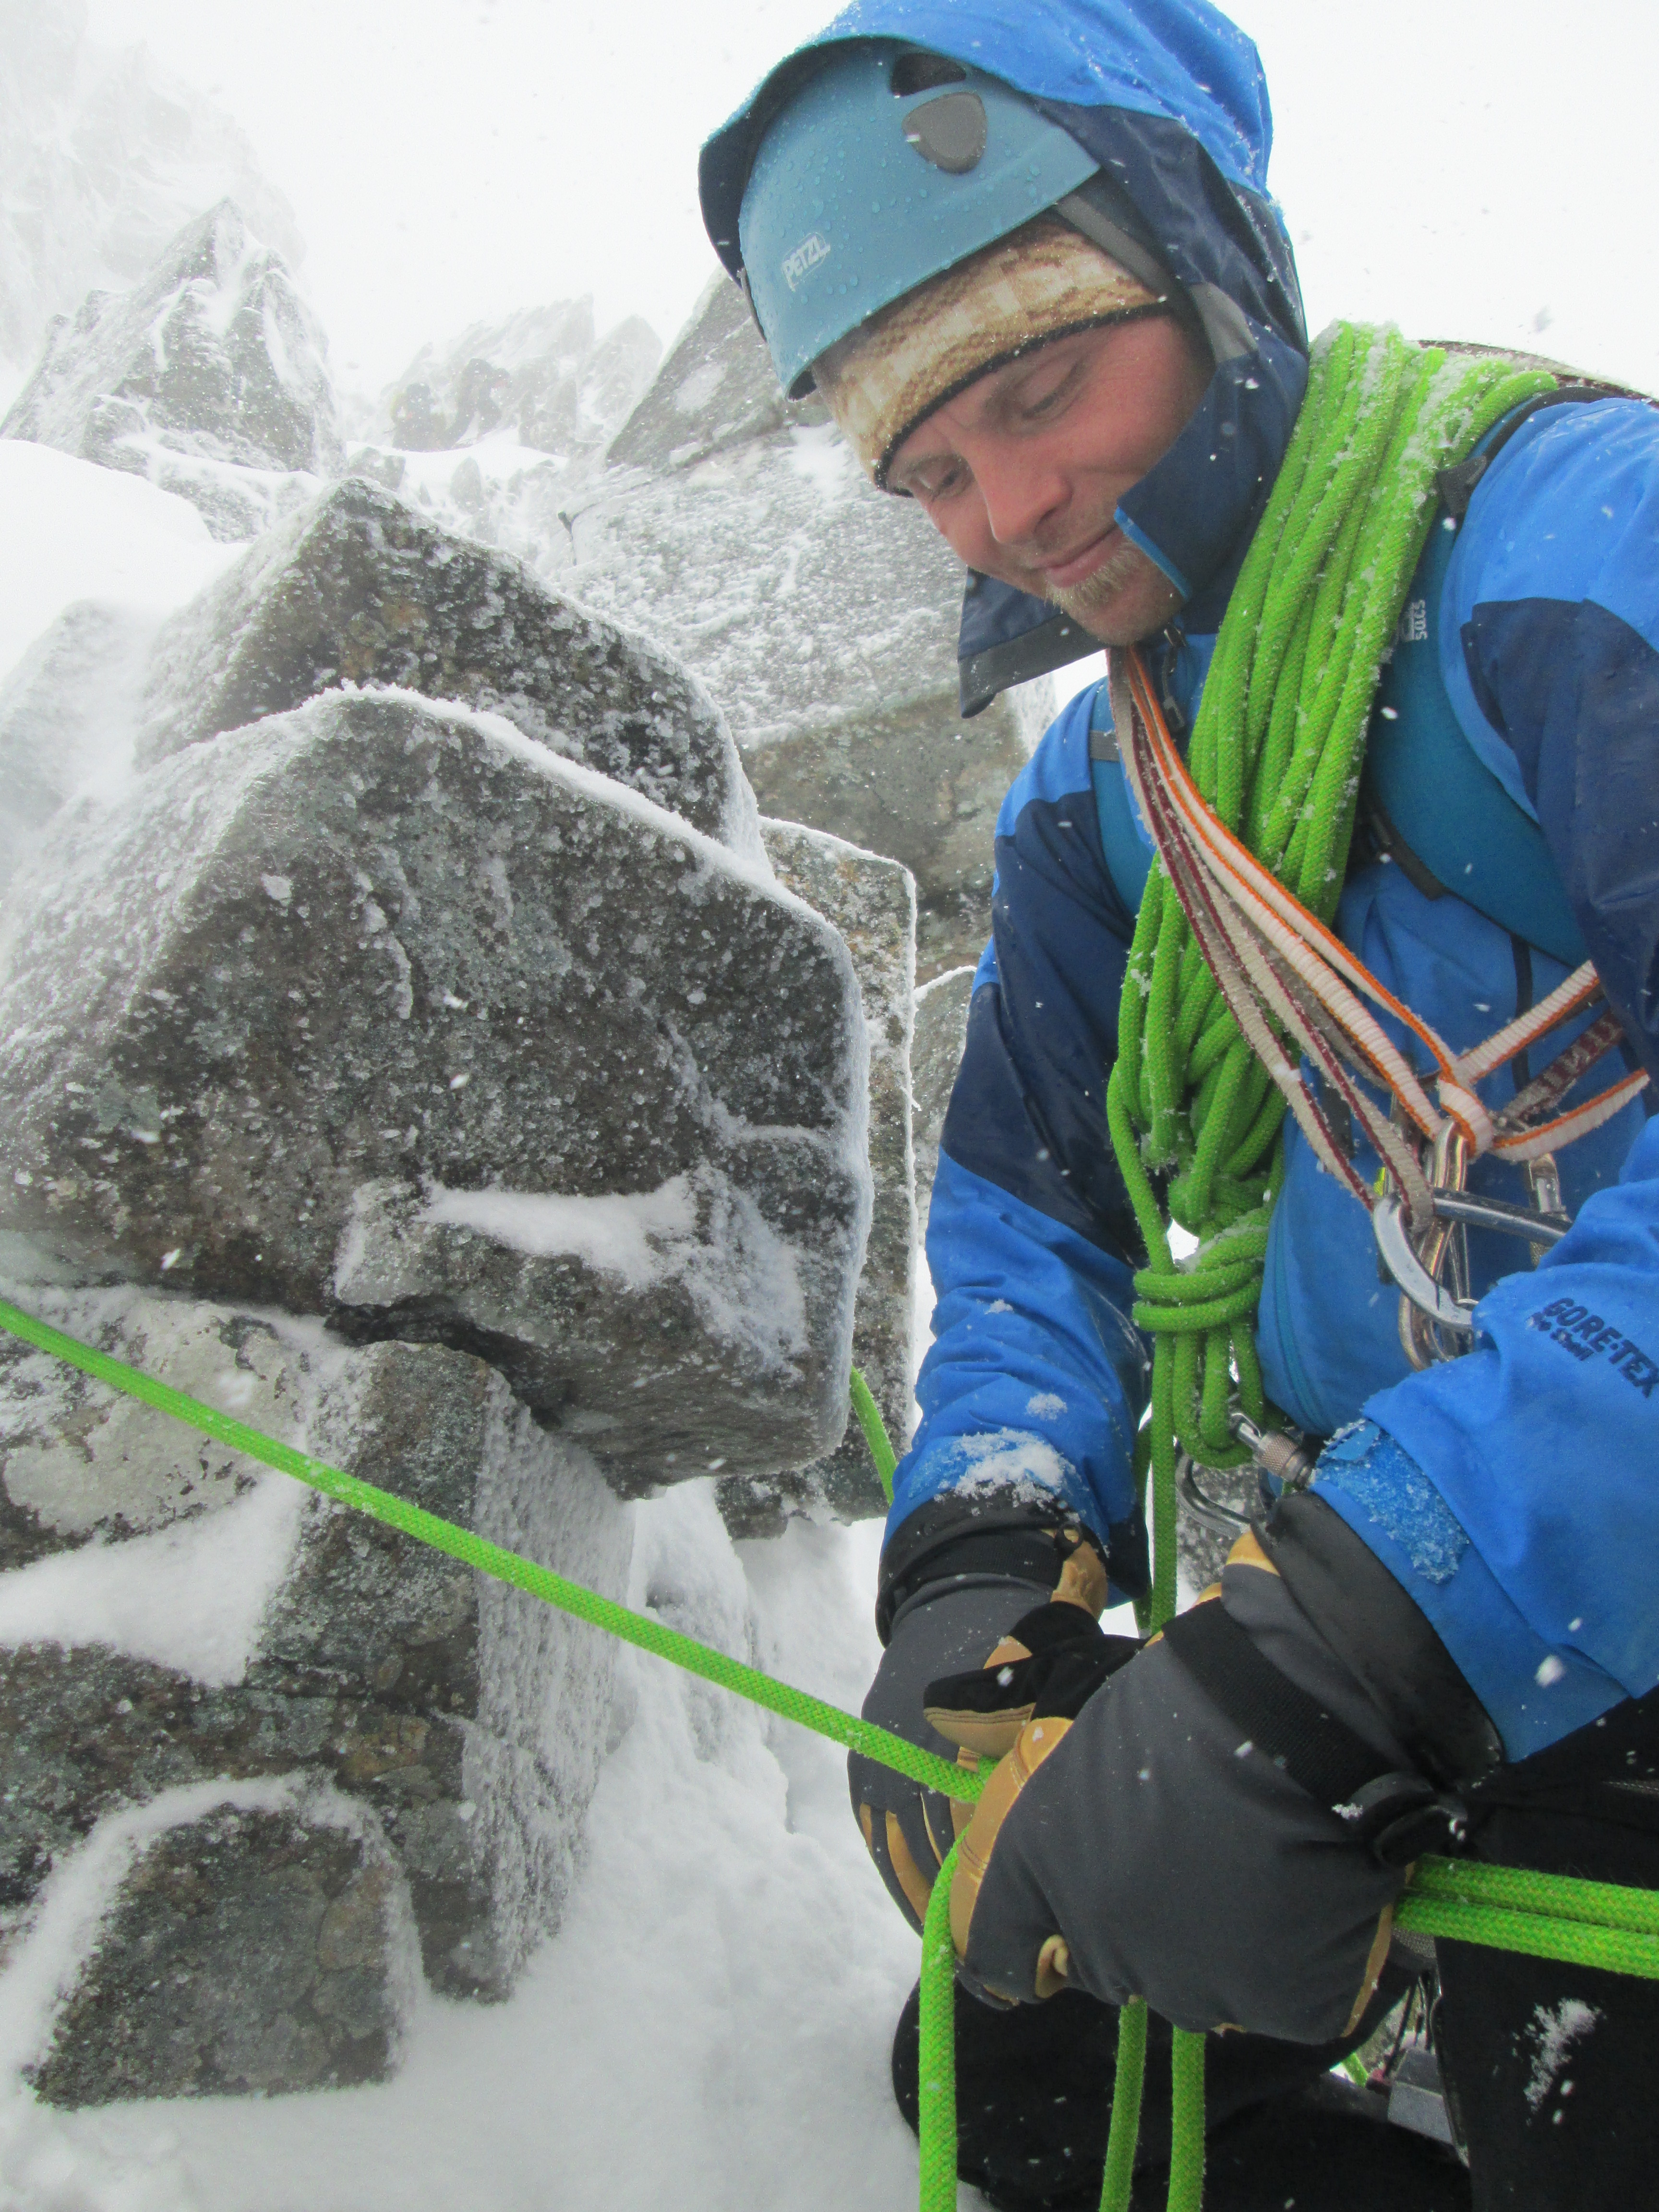 Choosing kit & gear for Scotland winter mountaineering